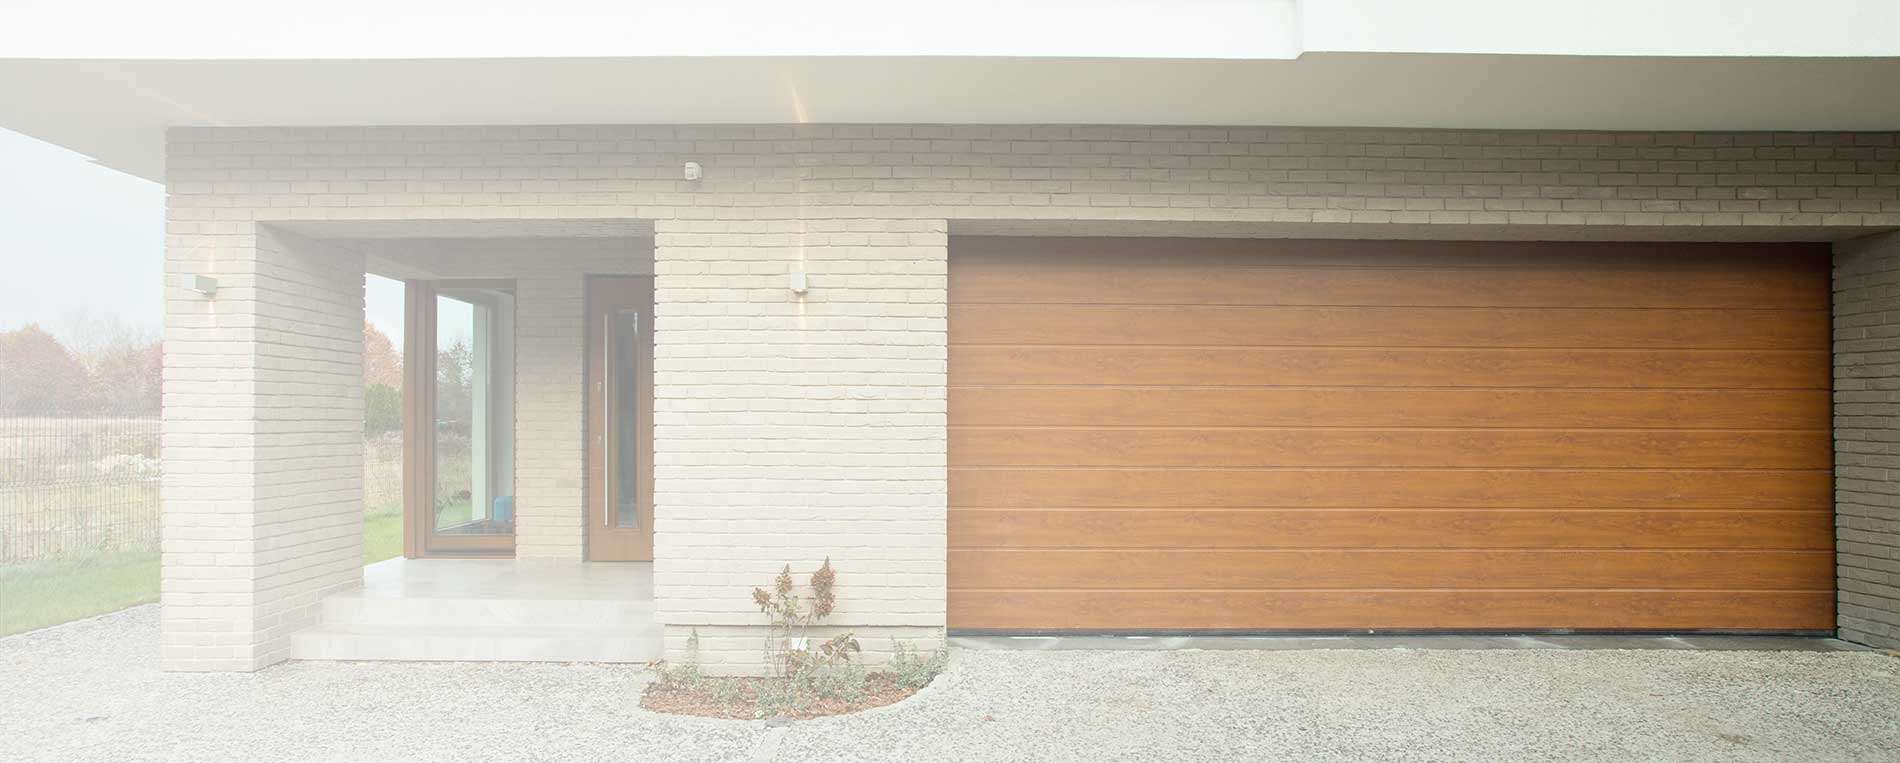 The Best Ways to Weatherproof Your Garage Door